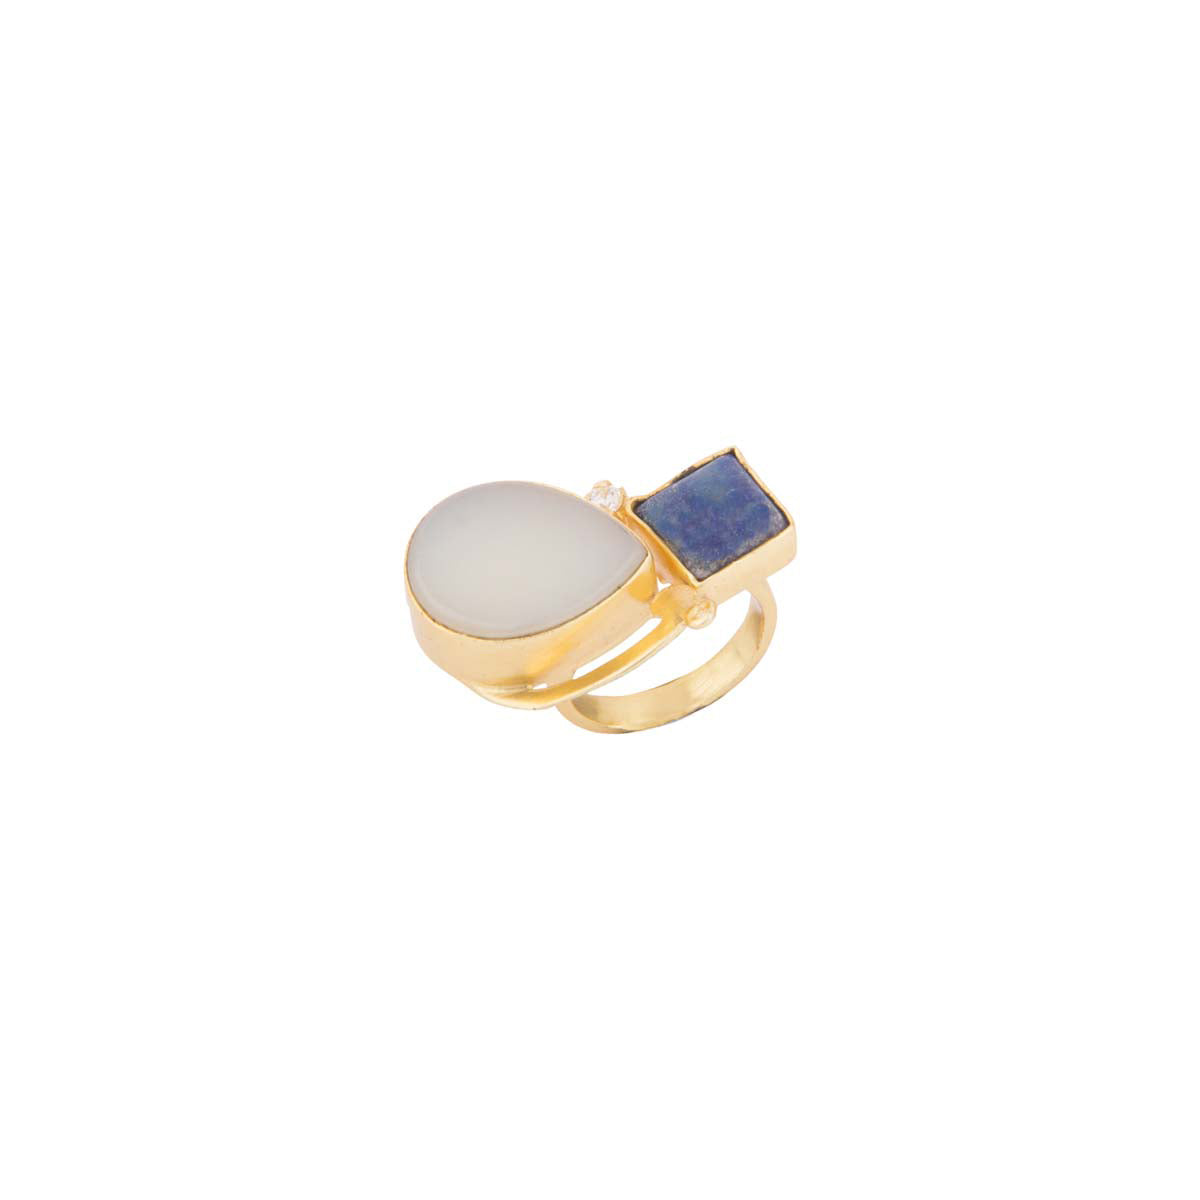 In a color play of white & blue, decorate your hand with this statement adjustable ring.